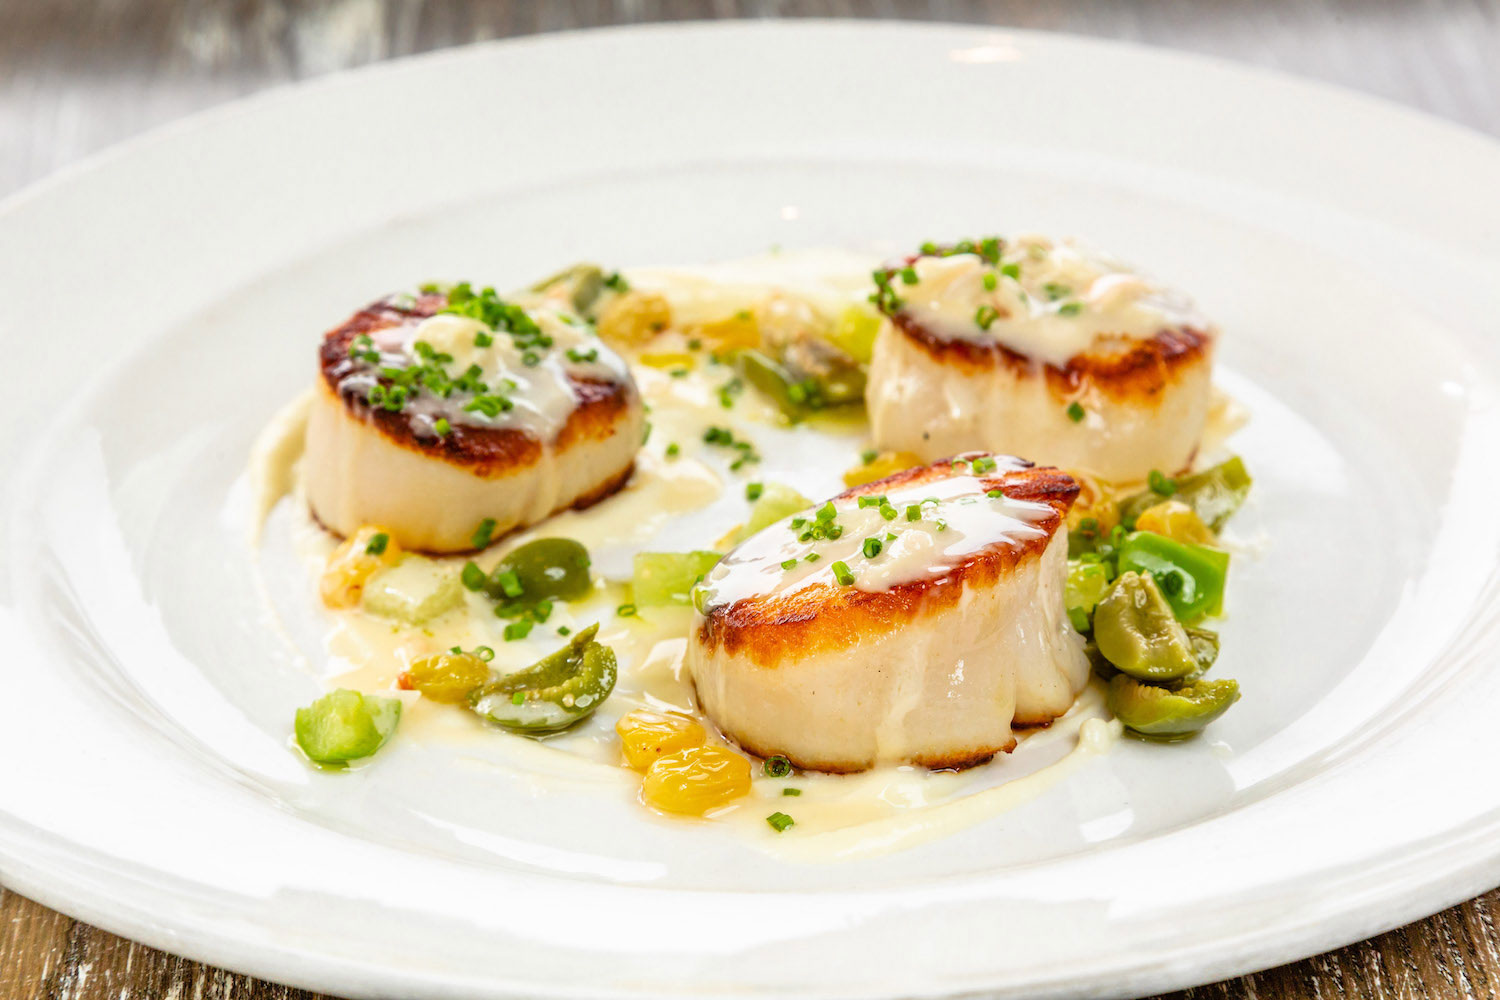 Culinary and scallops